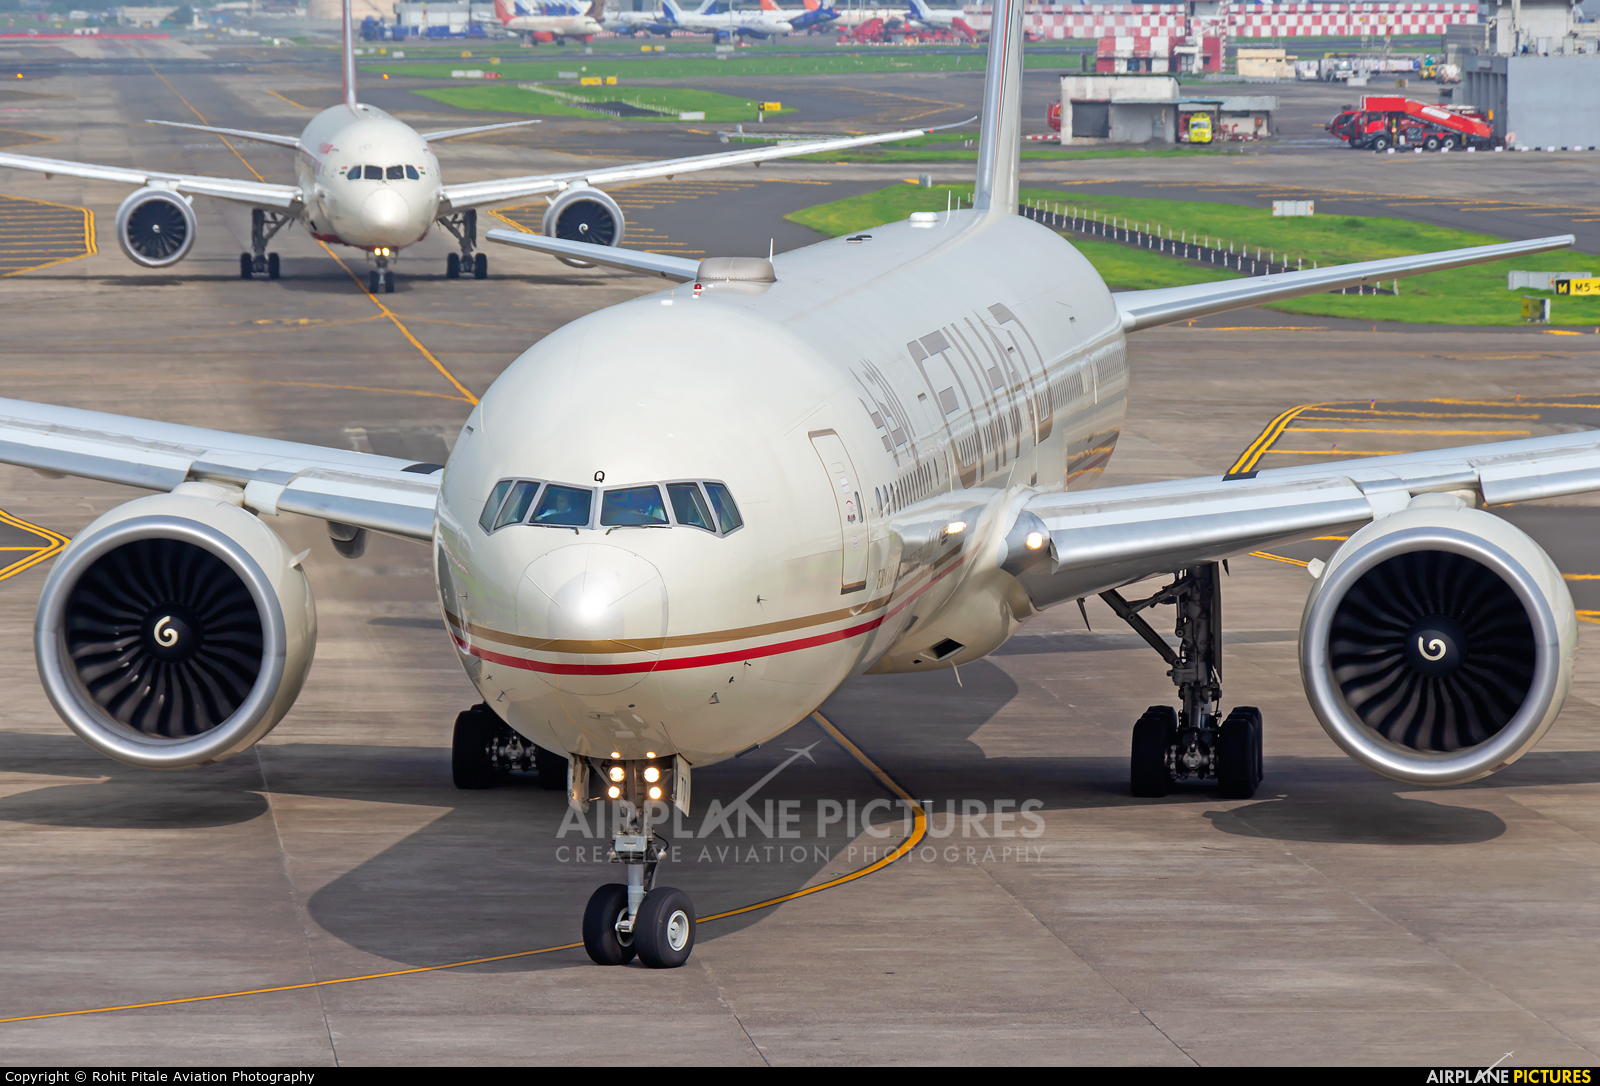 Etihad Airways A6-ETQ aircraft at Mumbai - Chhatrapati Shivaji Intl